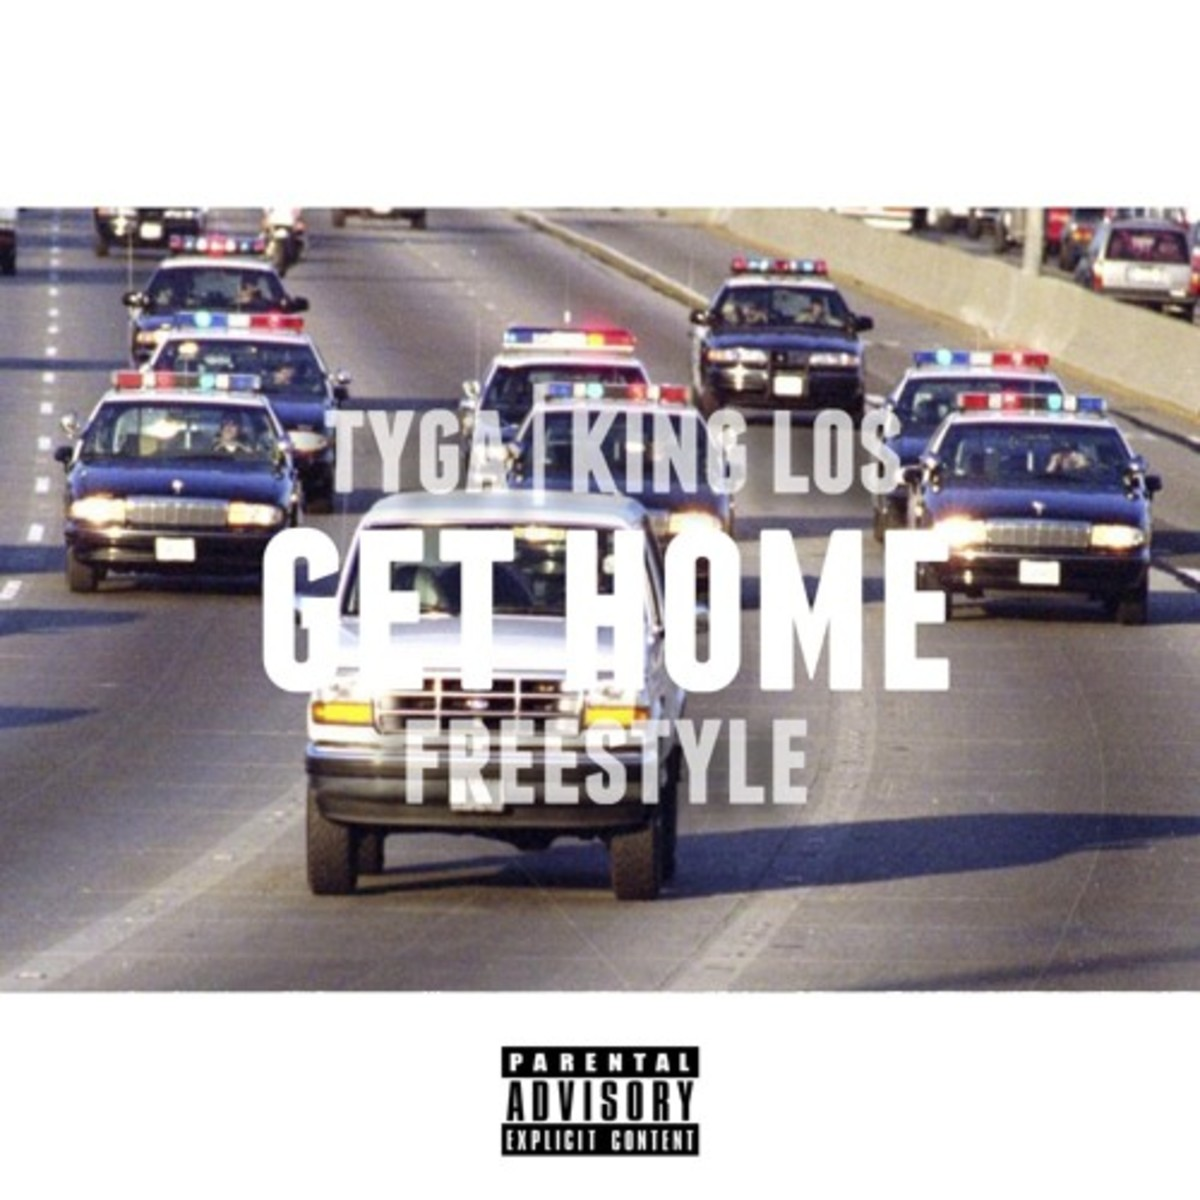 tyga-king-los-get-home.jpg